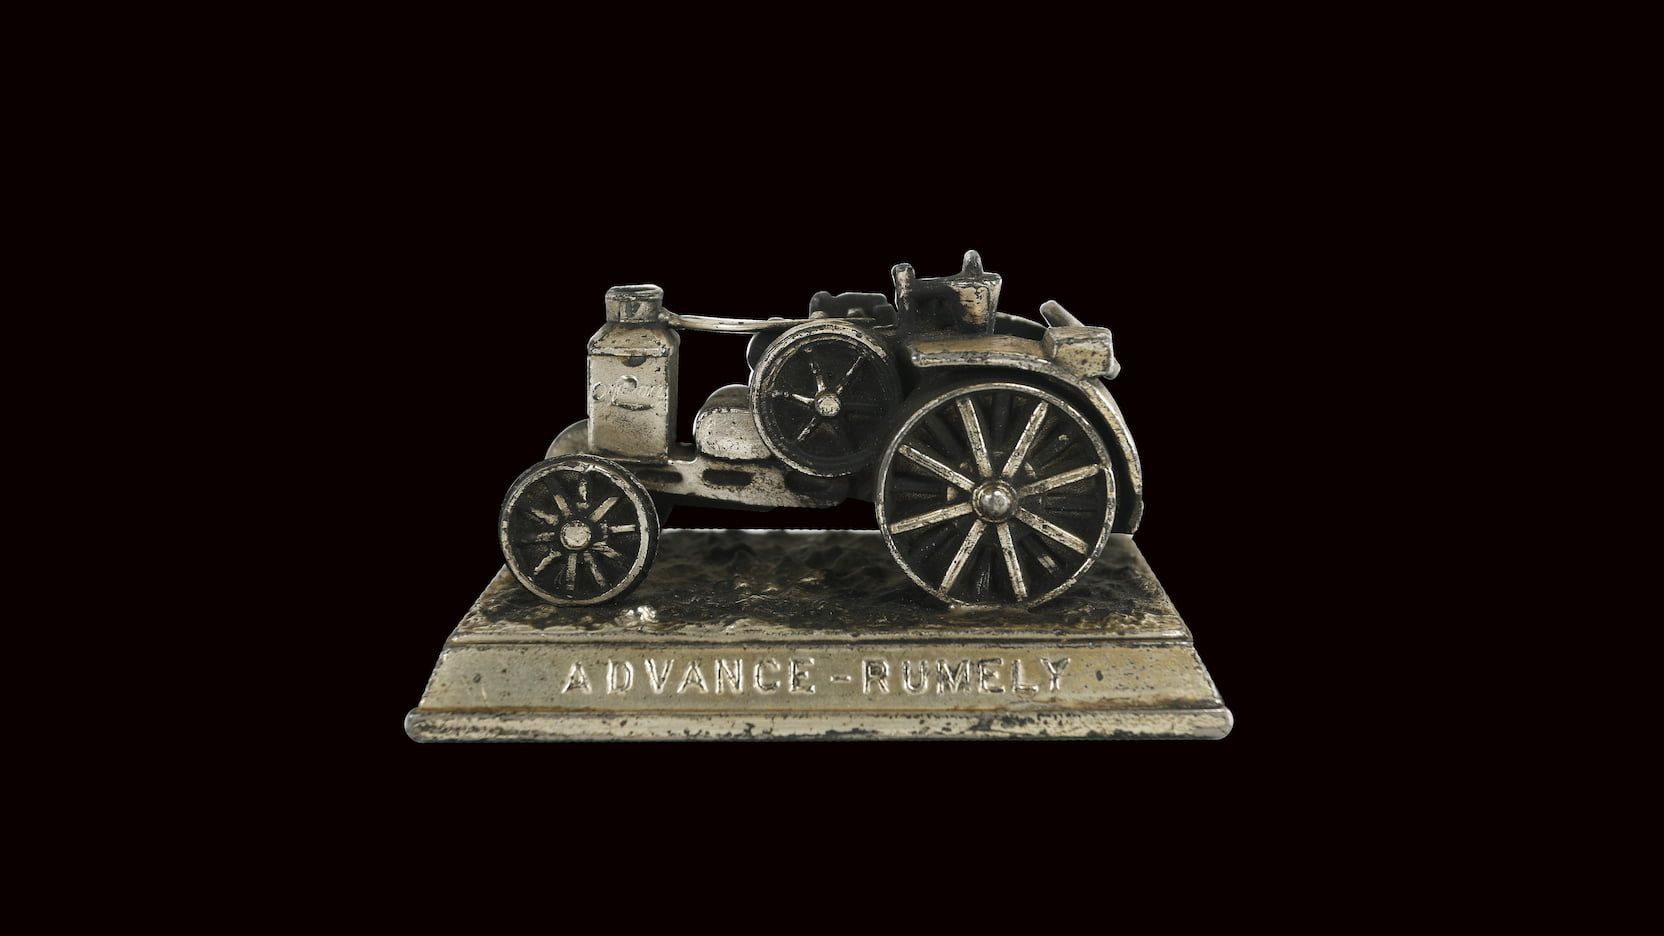 Advance Rumely